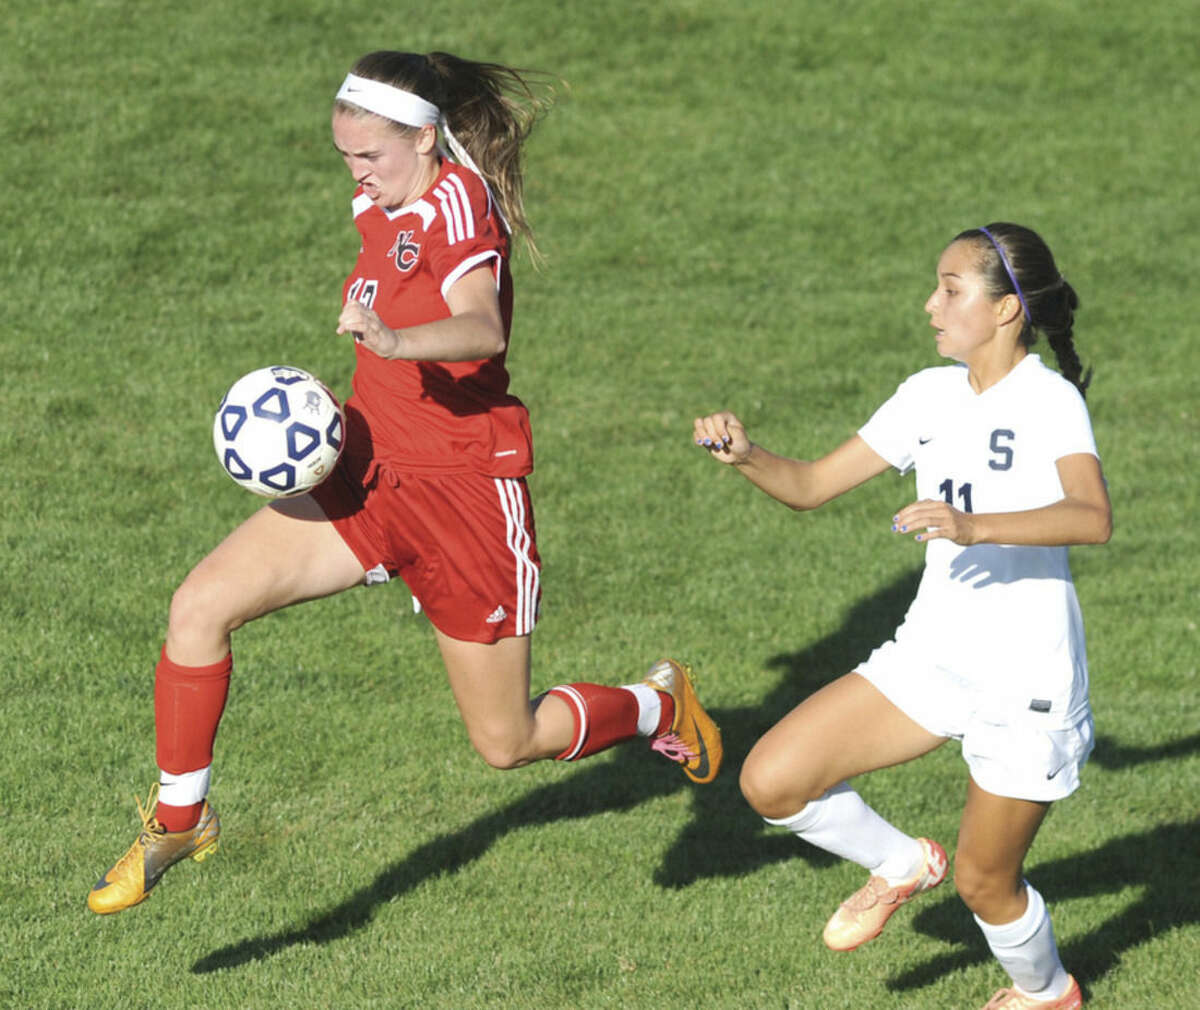 Hour photo/John Nash New Canaan's Samantha Stewart plays the ball in front of Staples' Tia Zajec during Wednesday's FCIAC girls soccer game at Loeffler Field in Westport. The Rams and Wreckers tied 1-1.